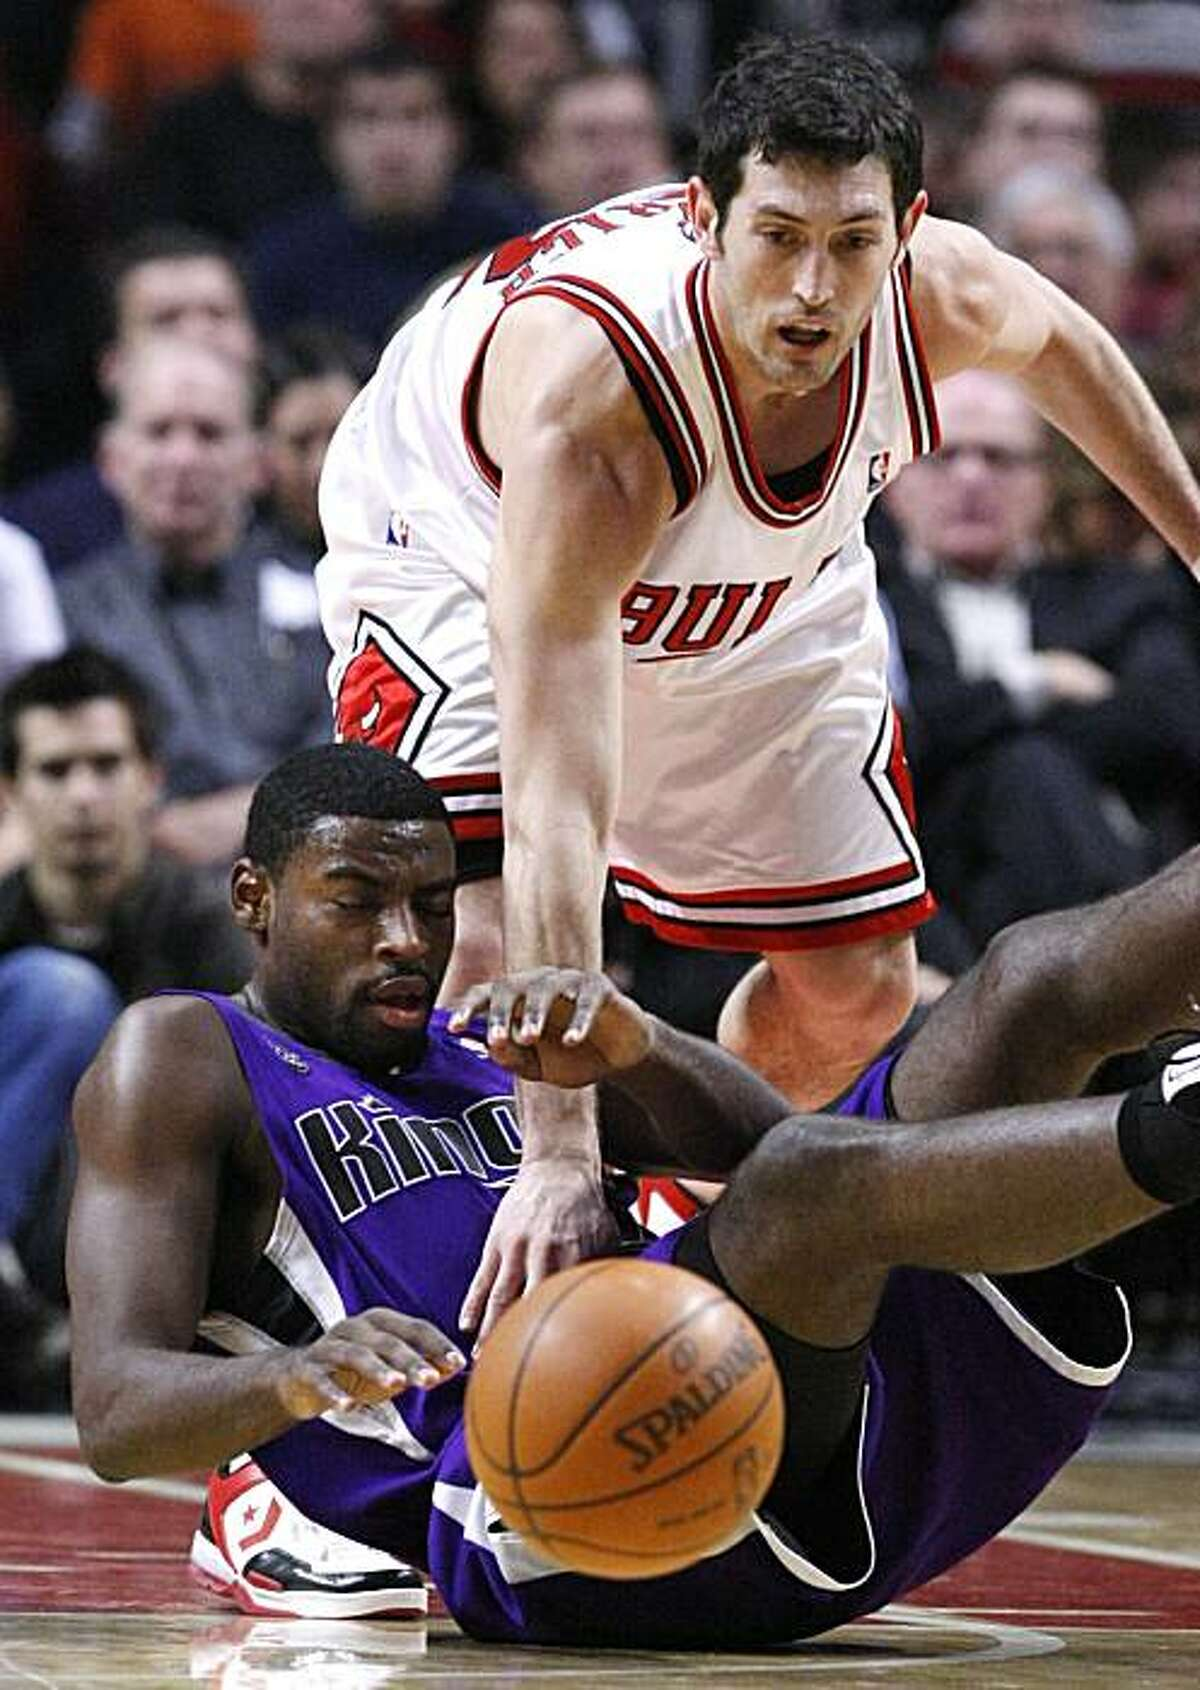 Chicago Bulls guard Kirk Hinrich, top, battles Sacramento Kings guard Tyreke Evans for a loose ball during the first half of an NBA basketball game Monday, Dec. 21, 2009, in Chicago. (AP Photo/Charles Rex Arbogast)